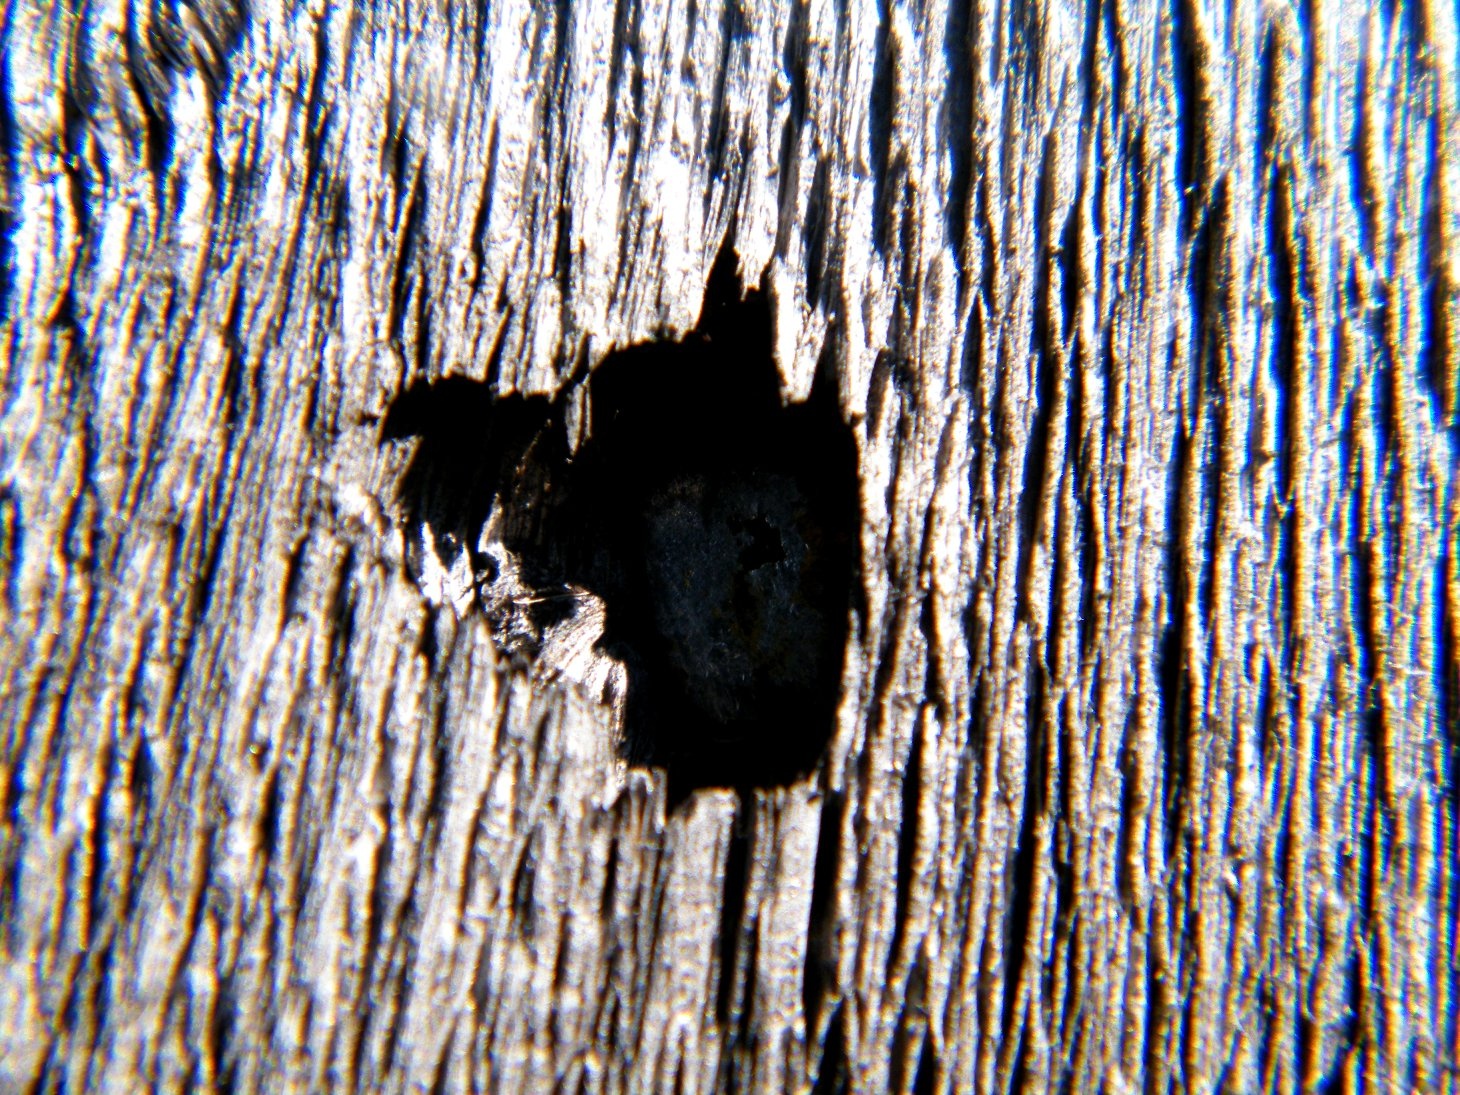 Macro Wooden Wall with Hole